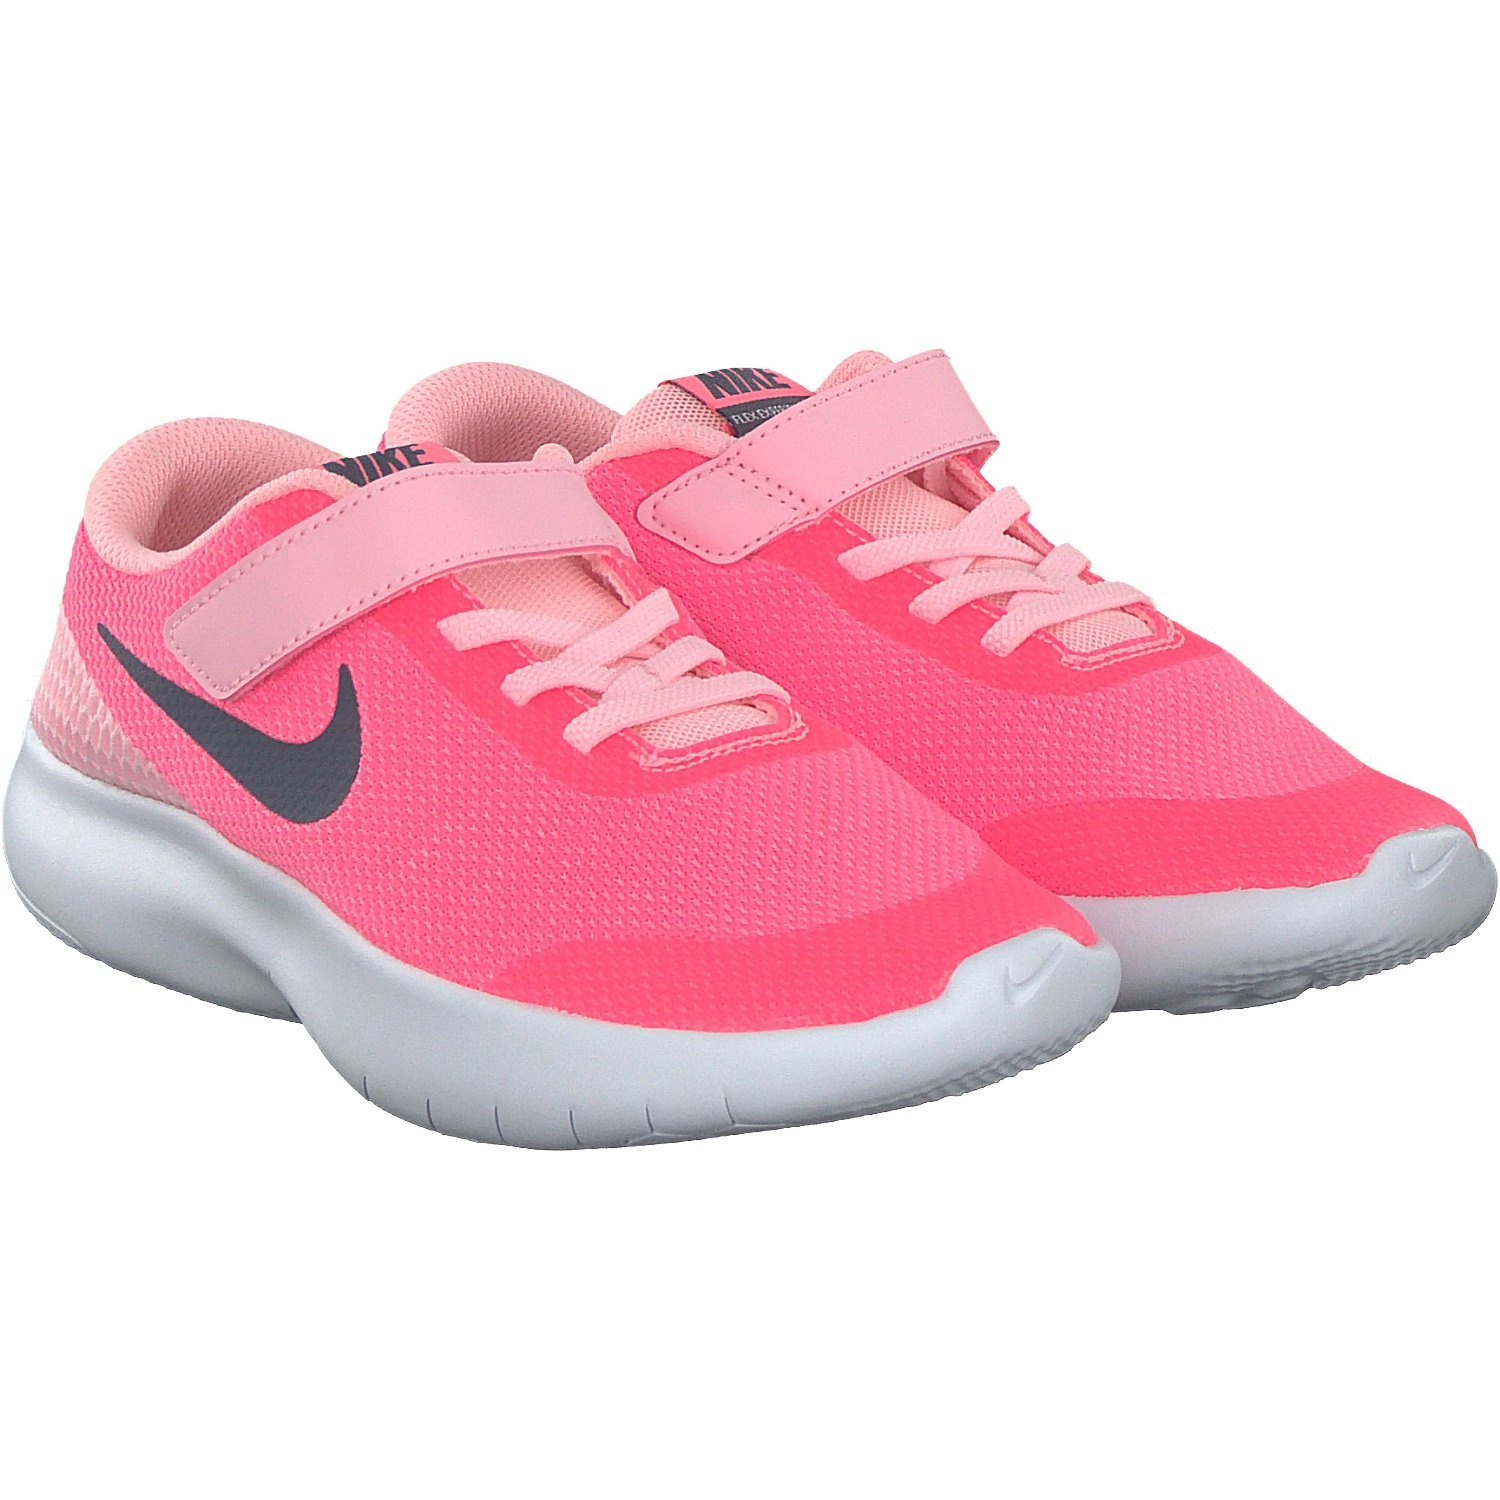 Nike Kids Flex Experience RN 7 (PS) Arctic Punch LT Carbon Sunset Size 1.5